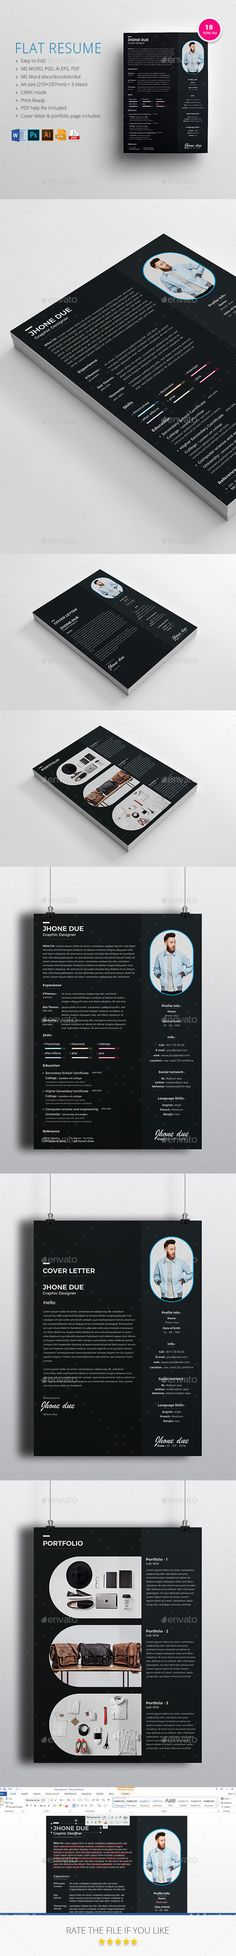 flat resume cover letter resume download here httpsgraphicriver